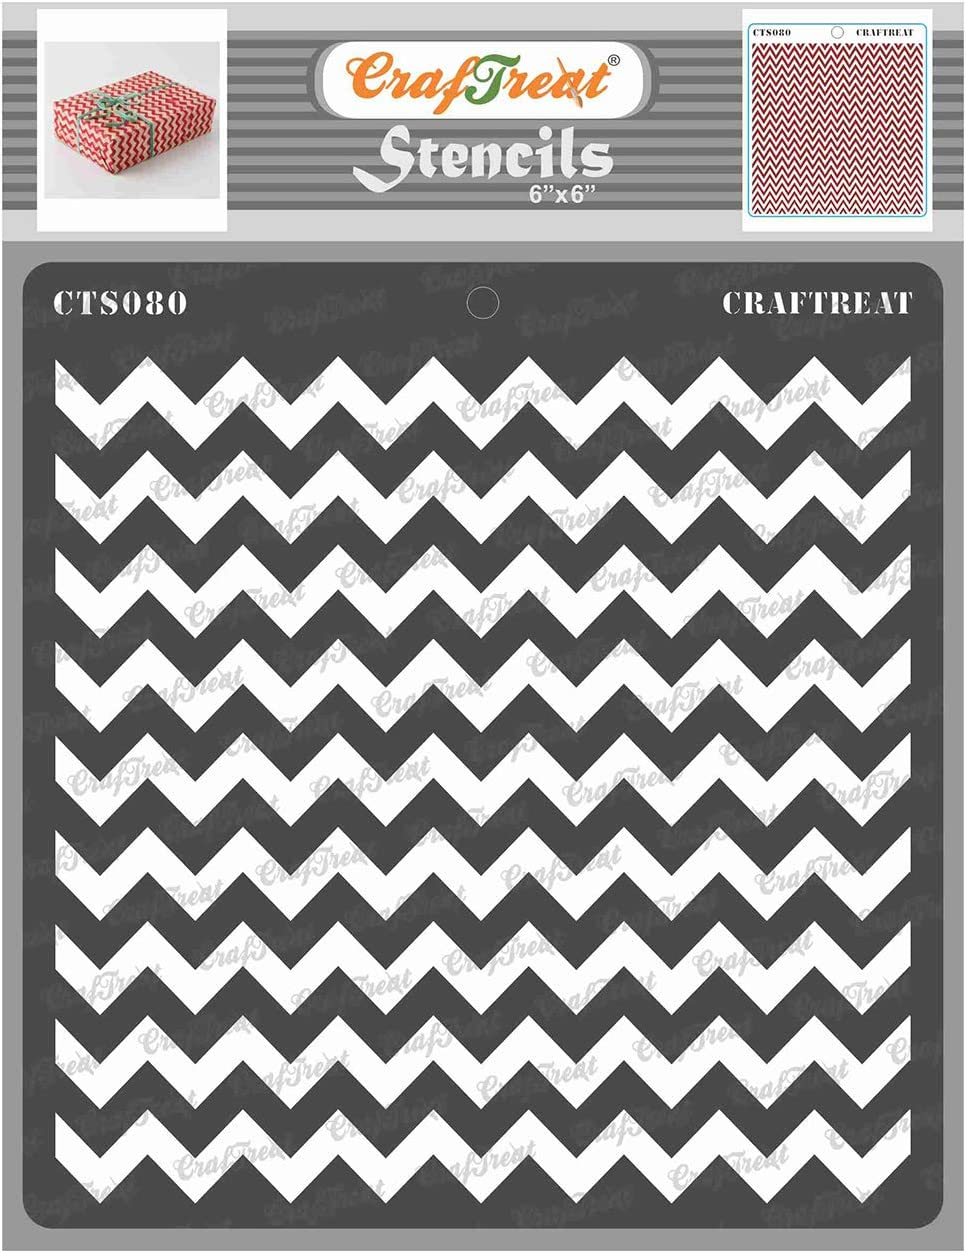 CrafTreat Geometric Stencils for Painting on Wood, Wall, Tile, Canvas, Paper, Fabric and Floor - Chevron Stencil - 6x6 Inches - Reusable DIY Art and Craft Stencils - Chevron Template